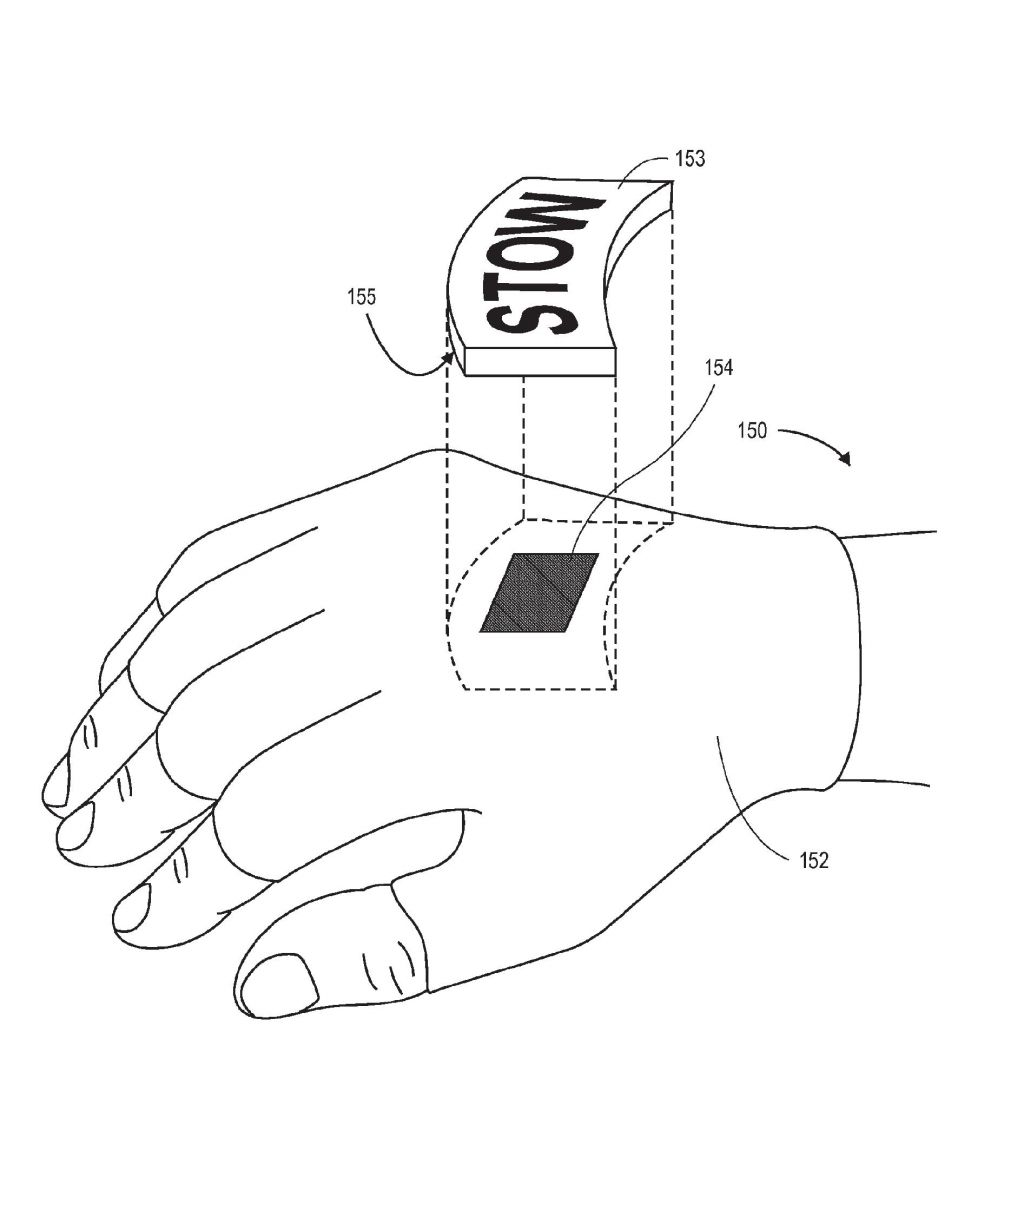 Wearable RFID devices with manually activated RFID tags. Amazon Industries, Inc. Source: European Patent Office (EPO)